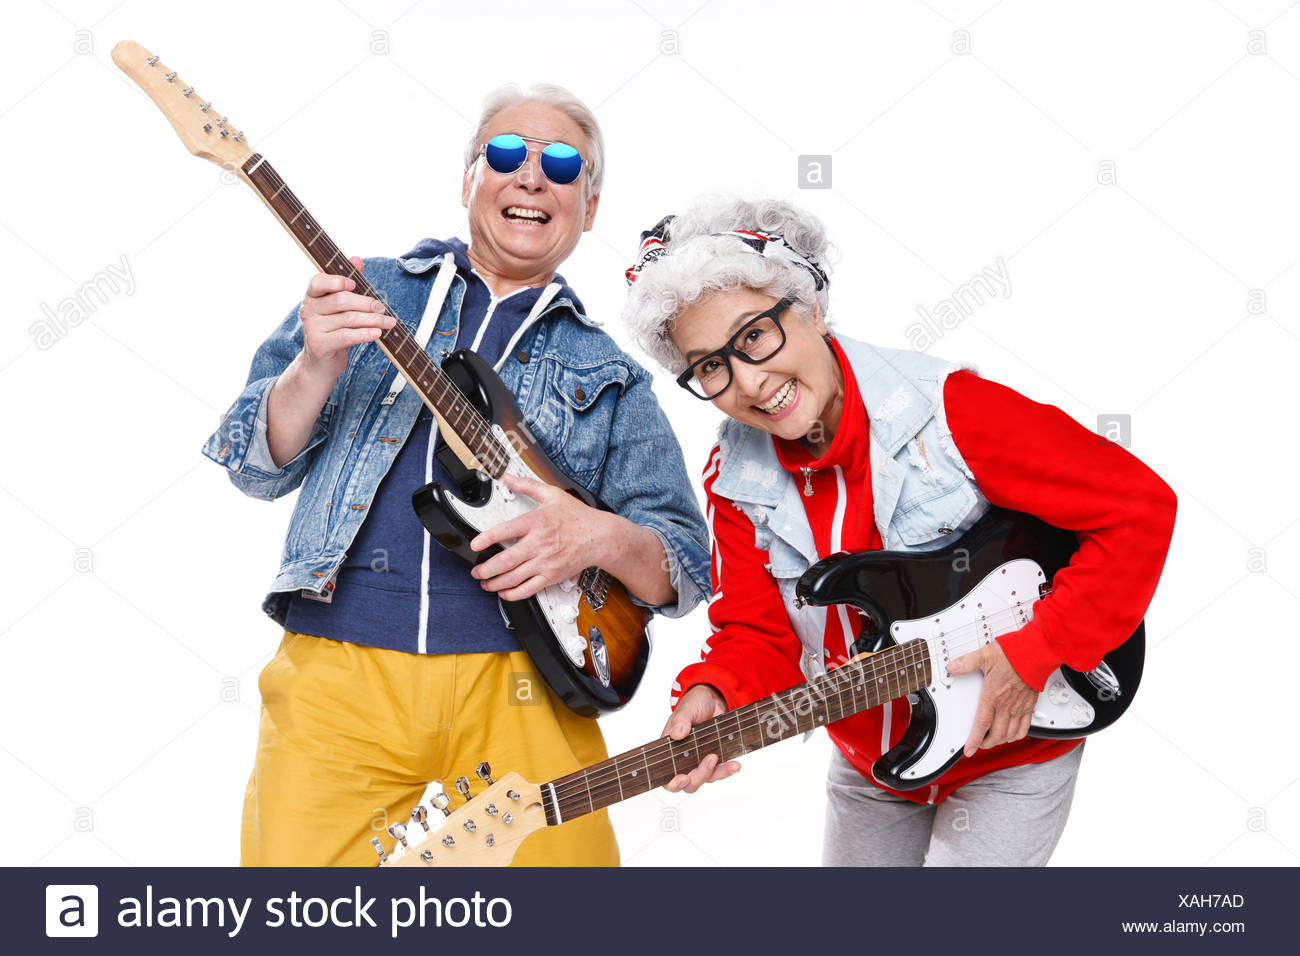 Two fashion of elderly people playing the guitar - Stock Image